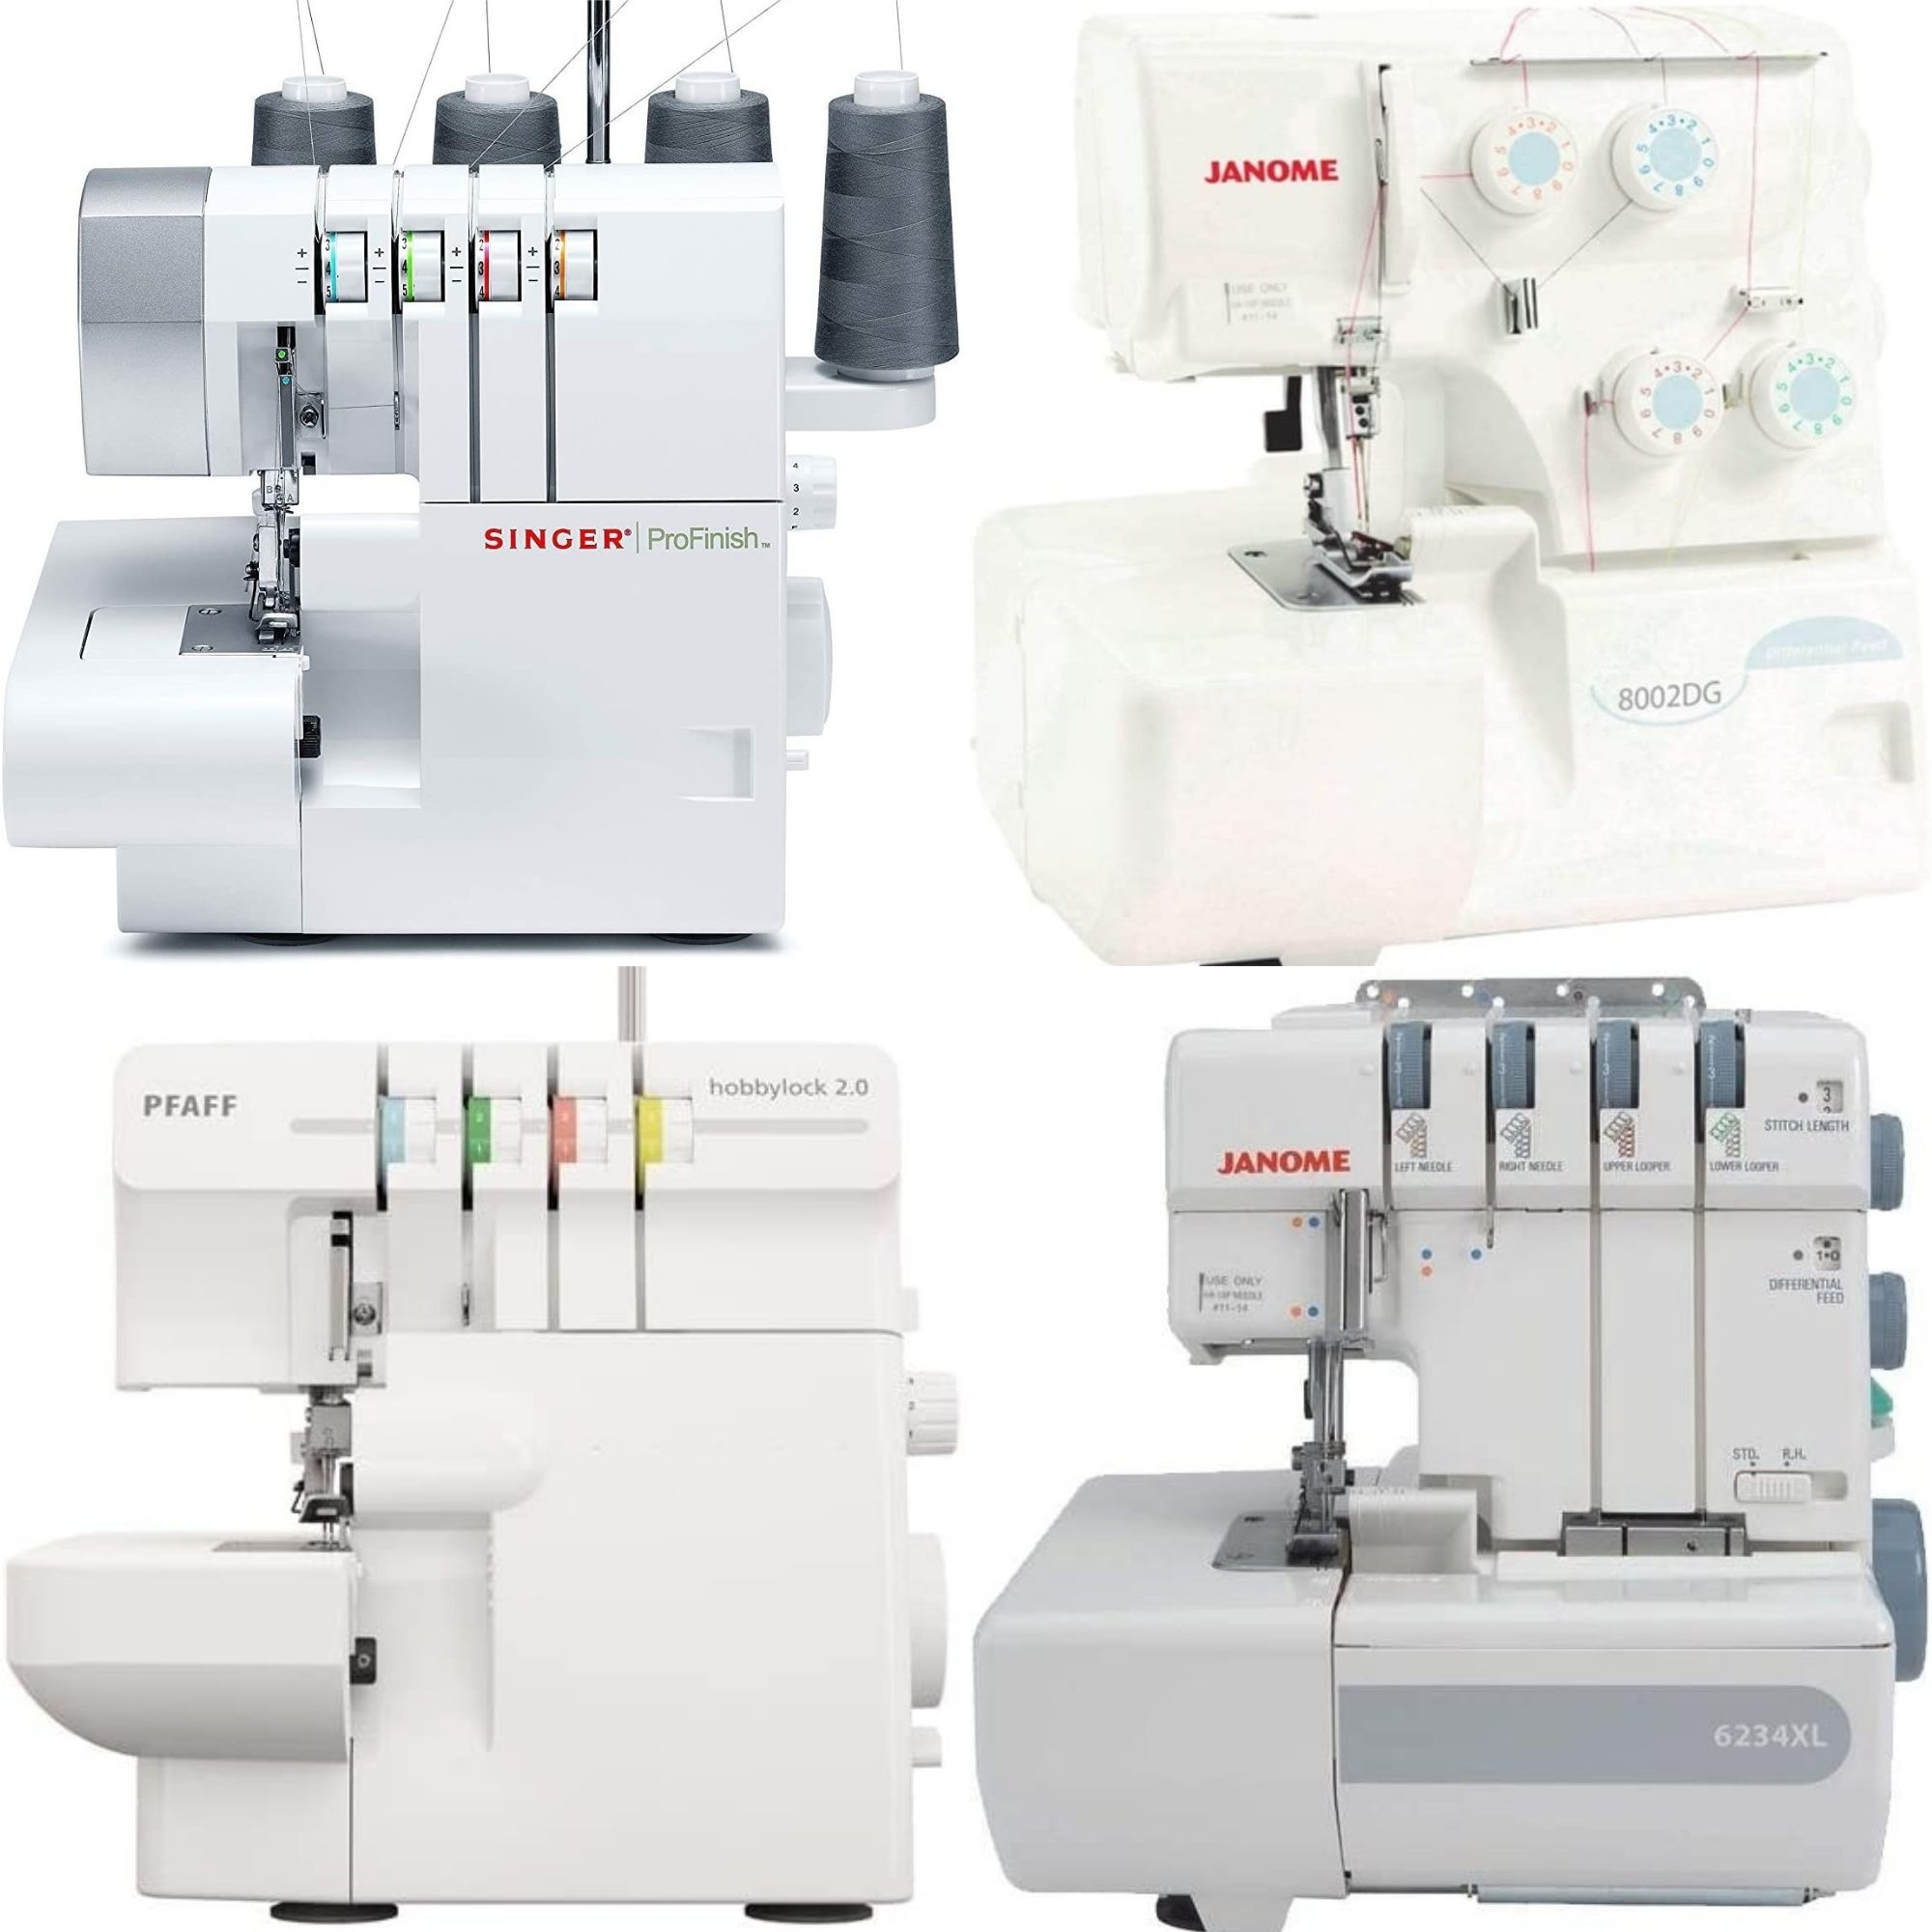 6 Spools of sewing Machine Silk art embroidery thread Black White brother janome